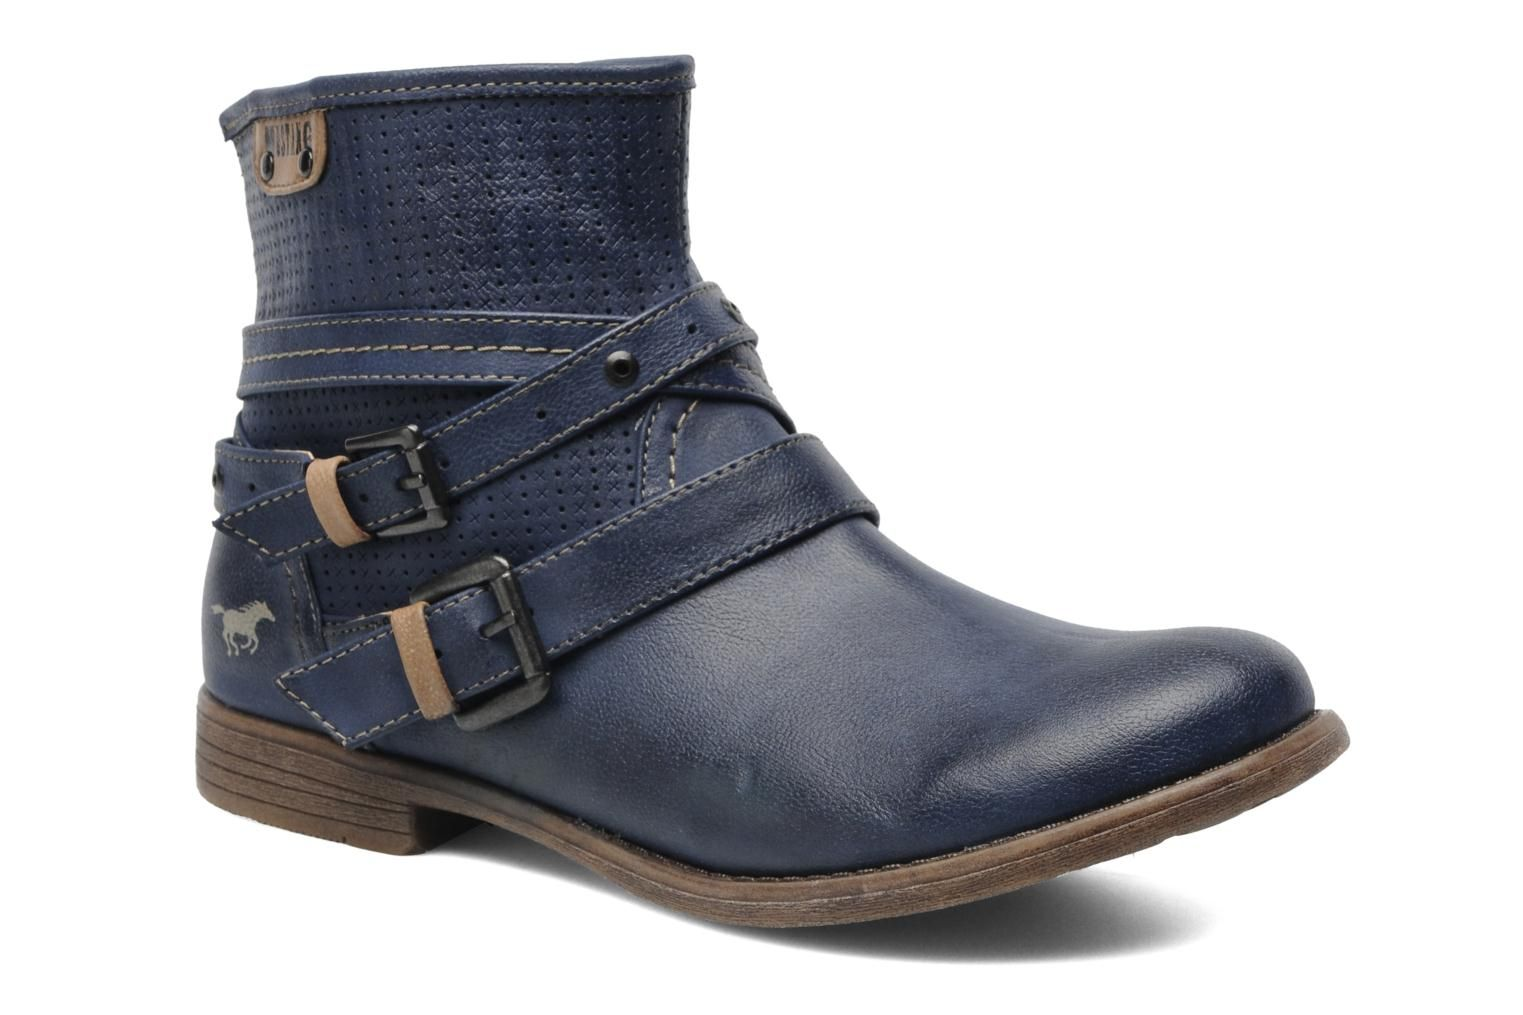 Lanian by Mustang shoes (Blue)   Sarenza UK   Your Ankle boots Lanian  Mustang shoes delivered for Free 83401af6fce1